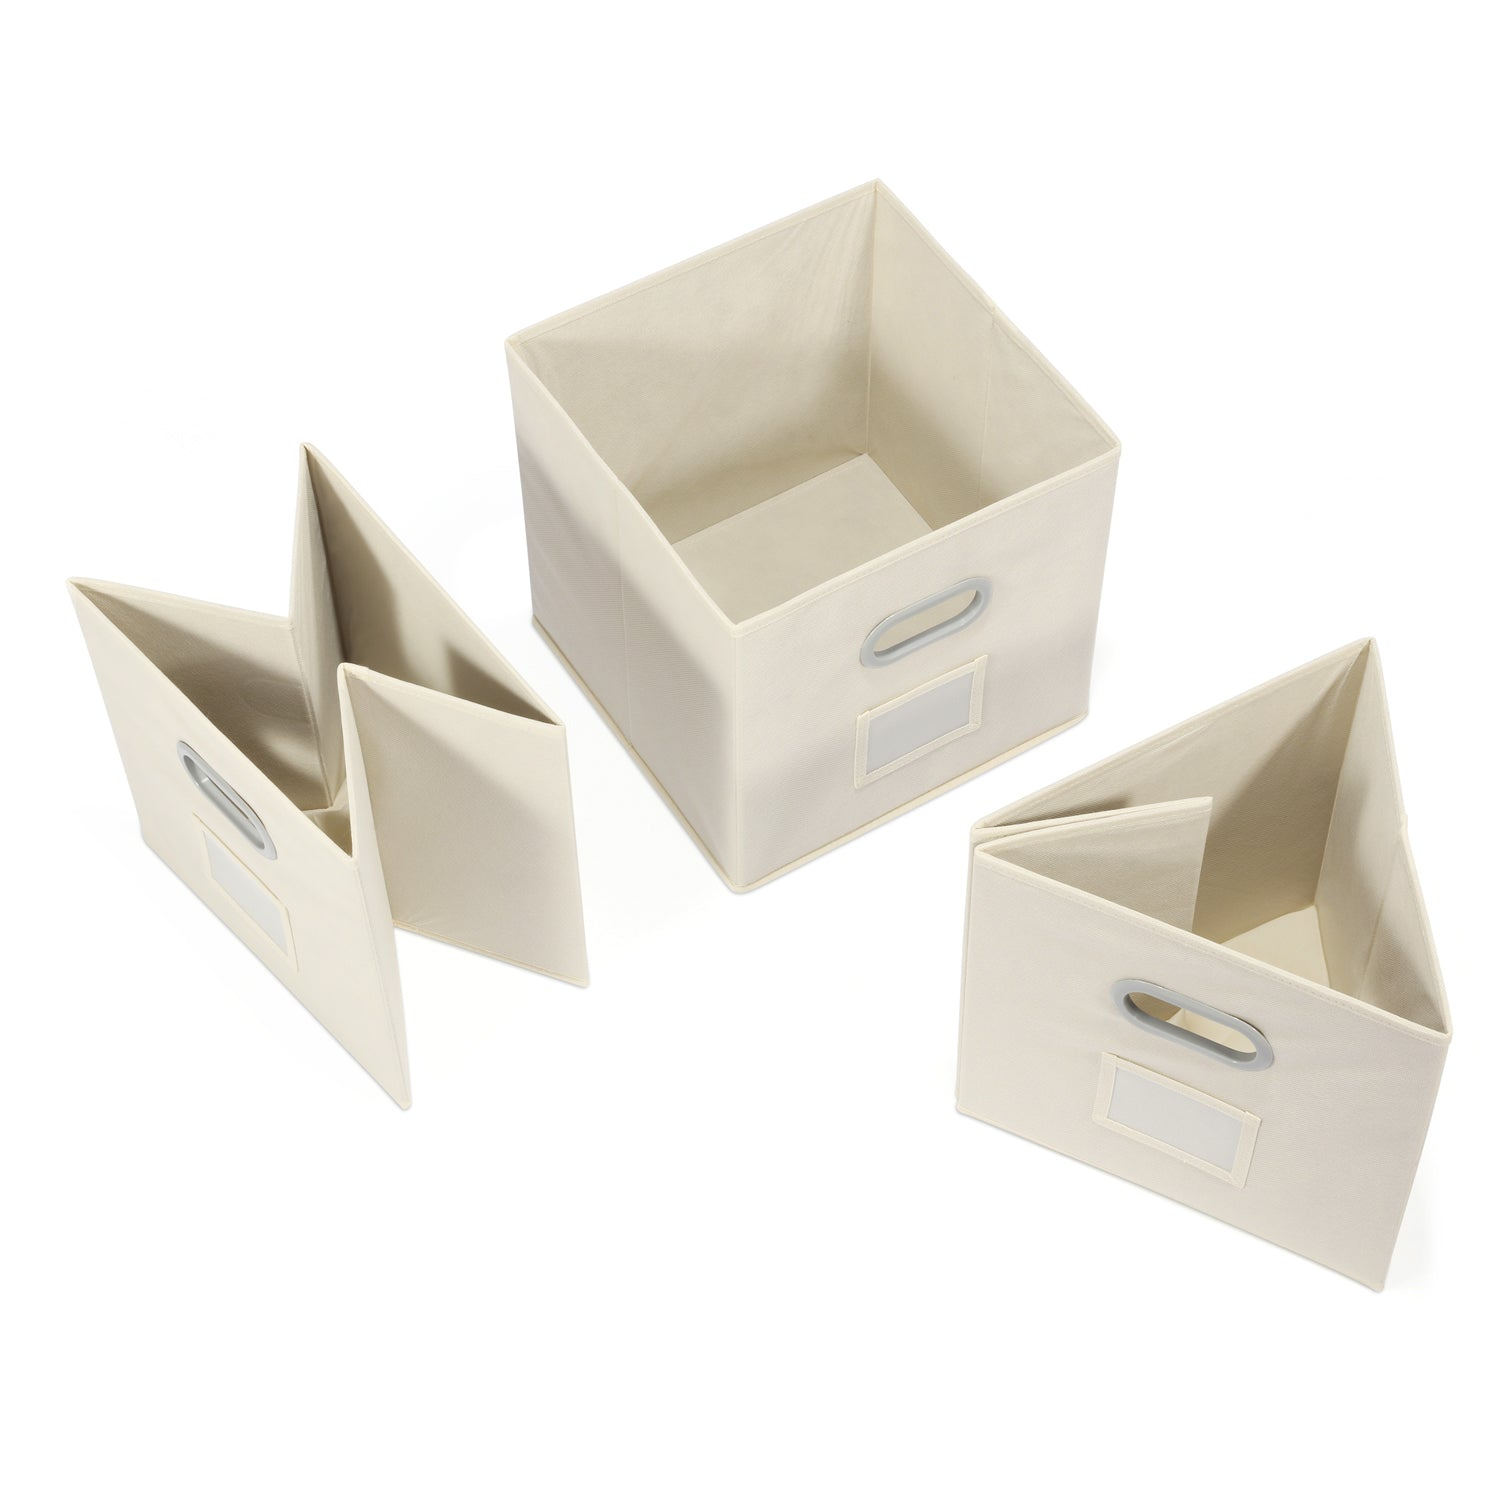 Foldable Storage Bins With Label Holders, Magicfly Set Of 6 Collapsible  Cloth Storage Cube With Dual Handles For Closet, Books, Socks, Beige